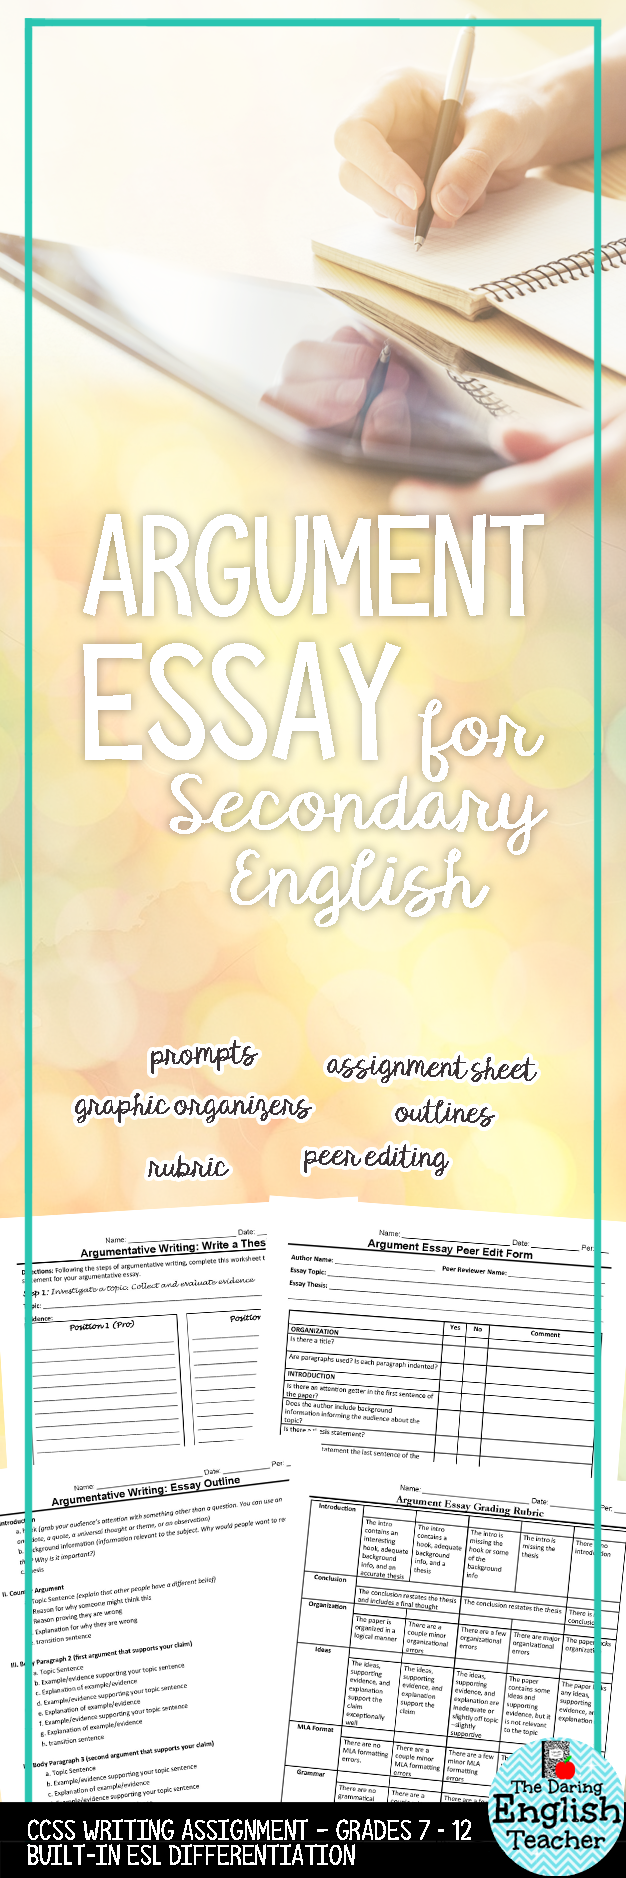 writing theme essay online